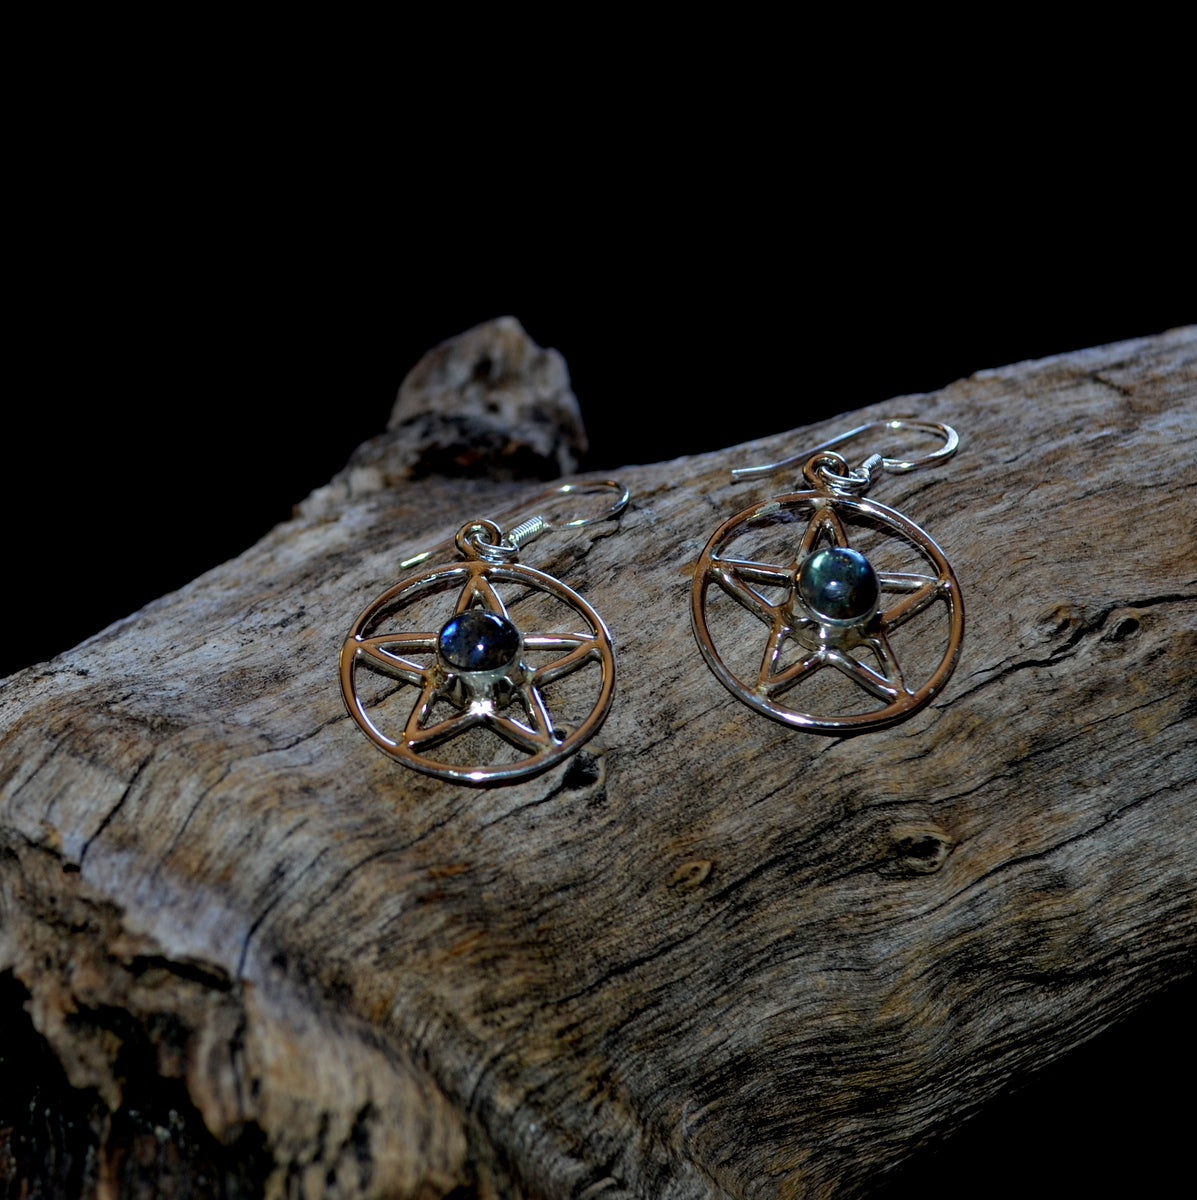 Labradorite Pentagram 925 Sterling Silver Earrings at Illiom Crystals - Afterpay Available